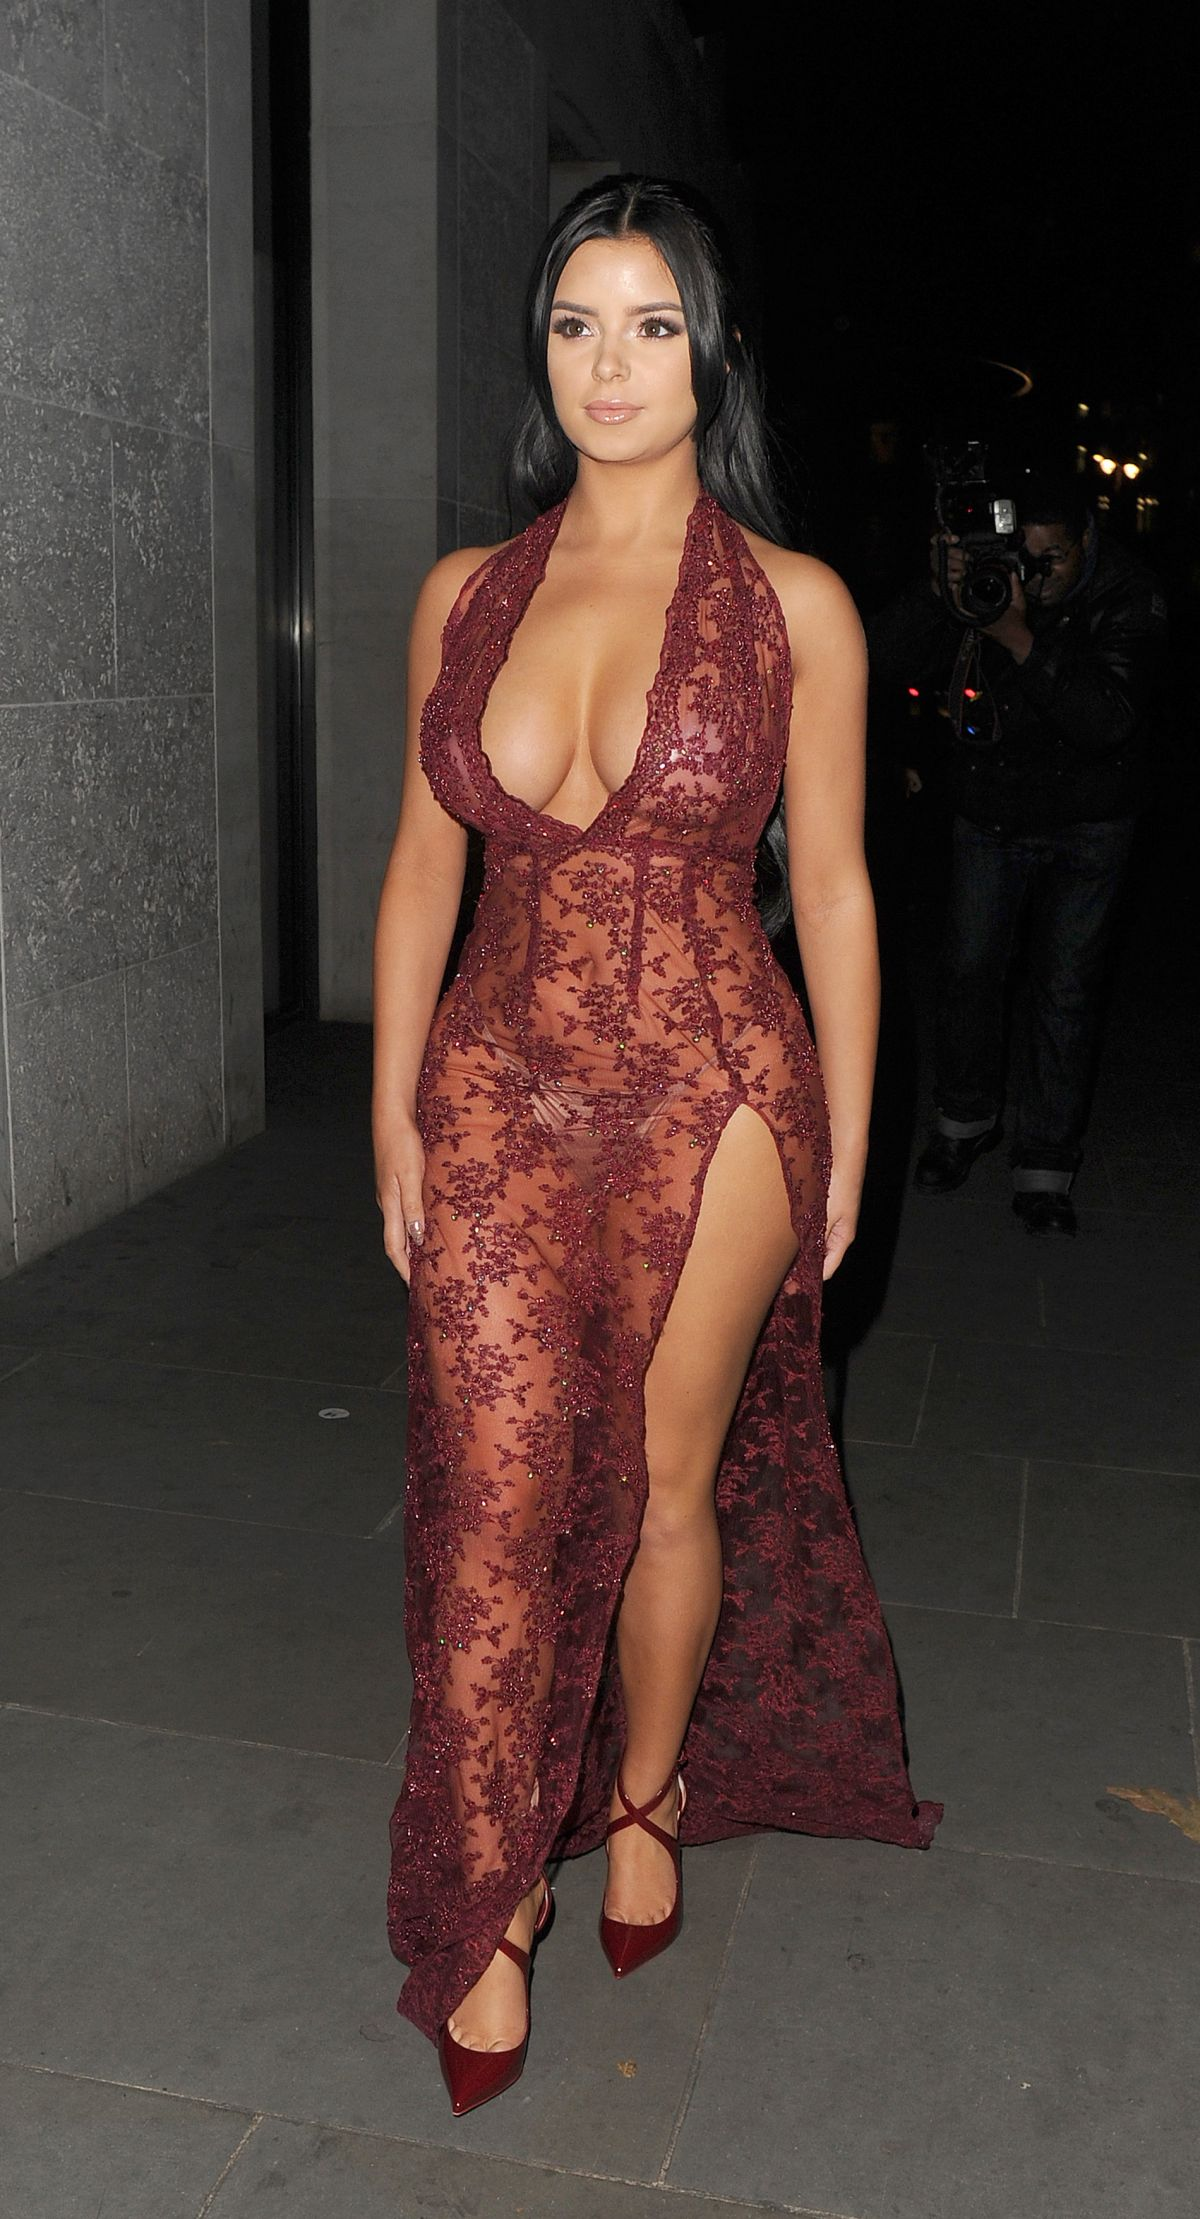 Demi Rose At Sixty6 Magazine Launch Party In London   demi-rose-at-sixty6-magazine-launch-party-in-london_9